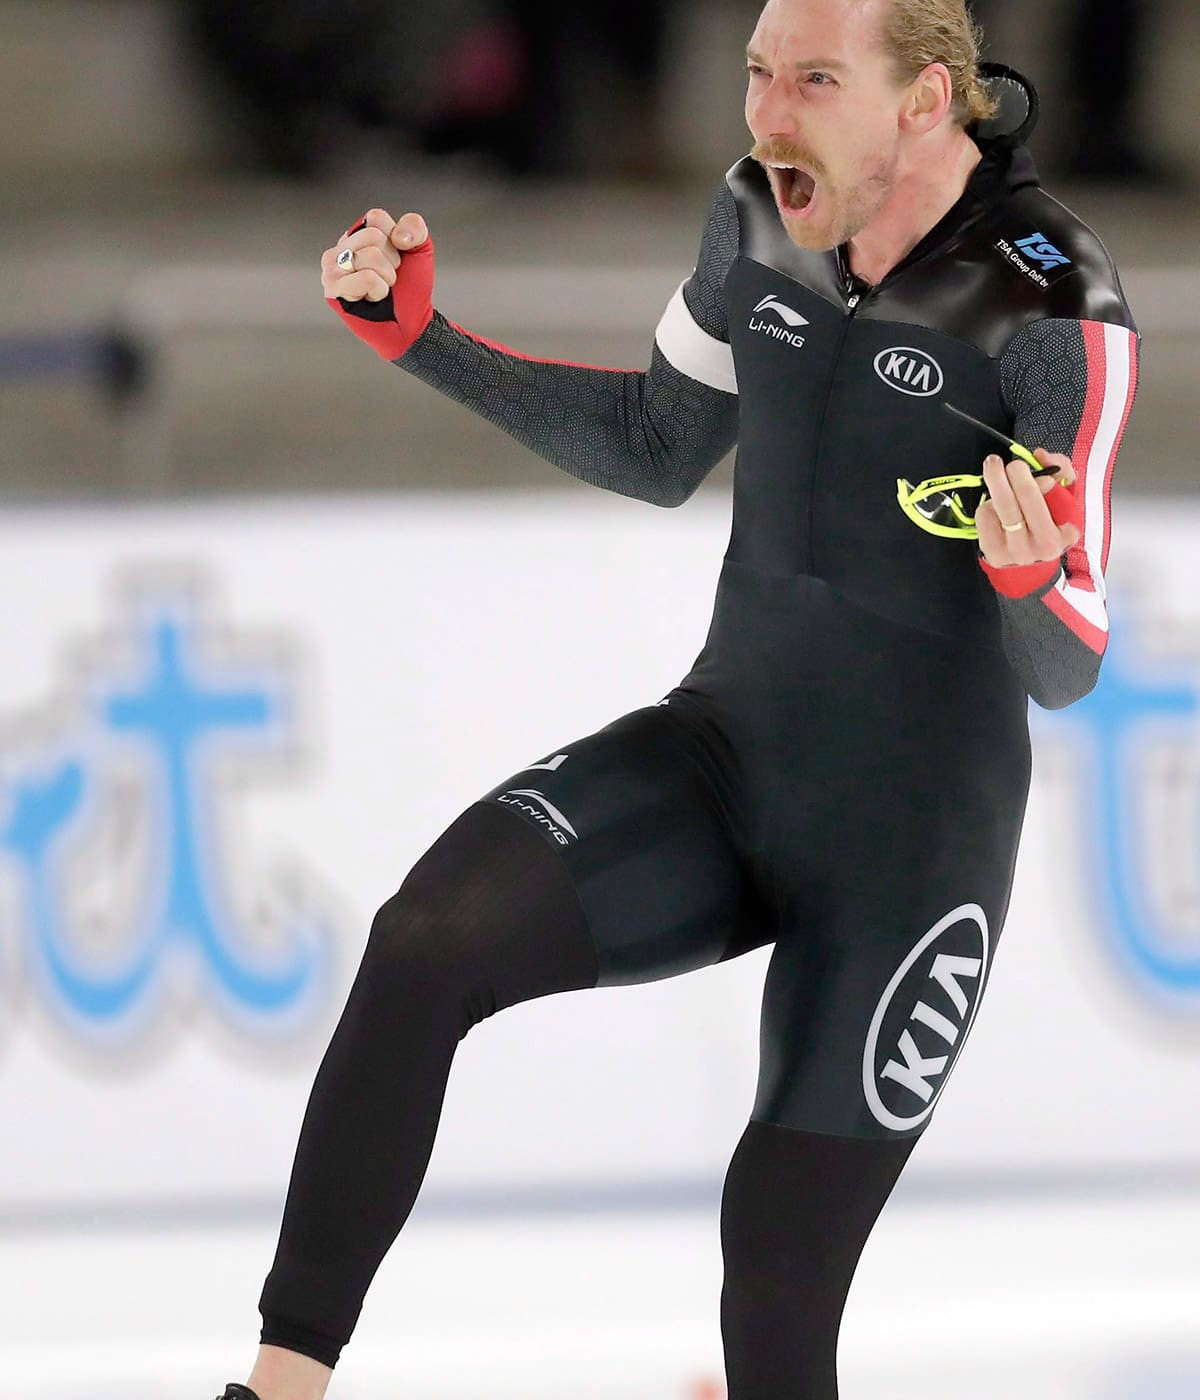 Speed skater Ted-Jan Bloemen putting world on notice the 'Canadian way'